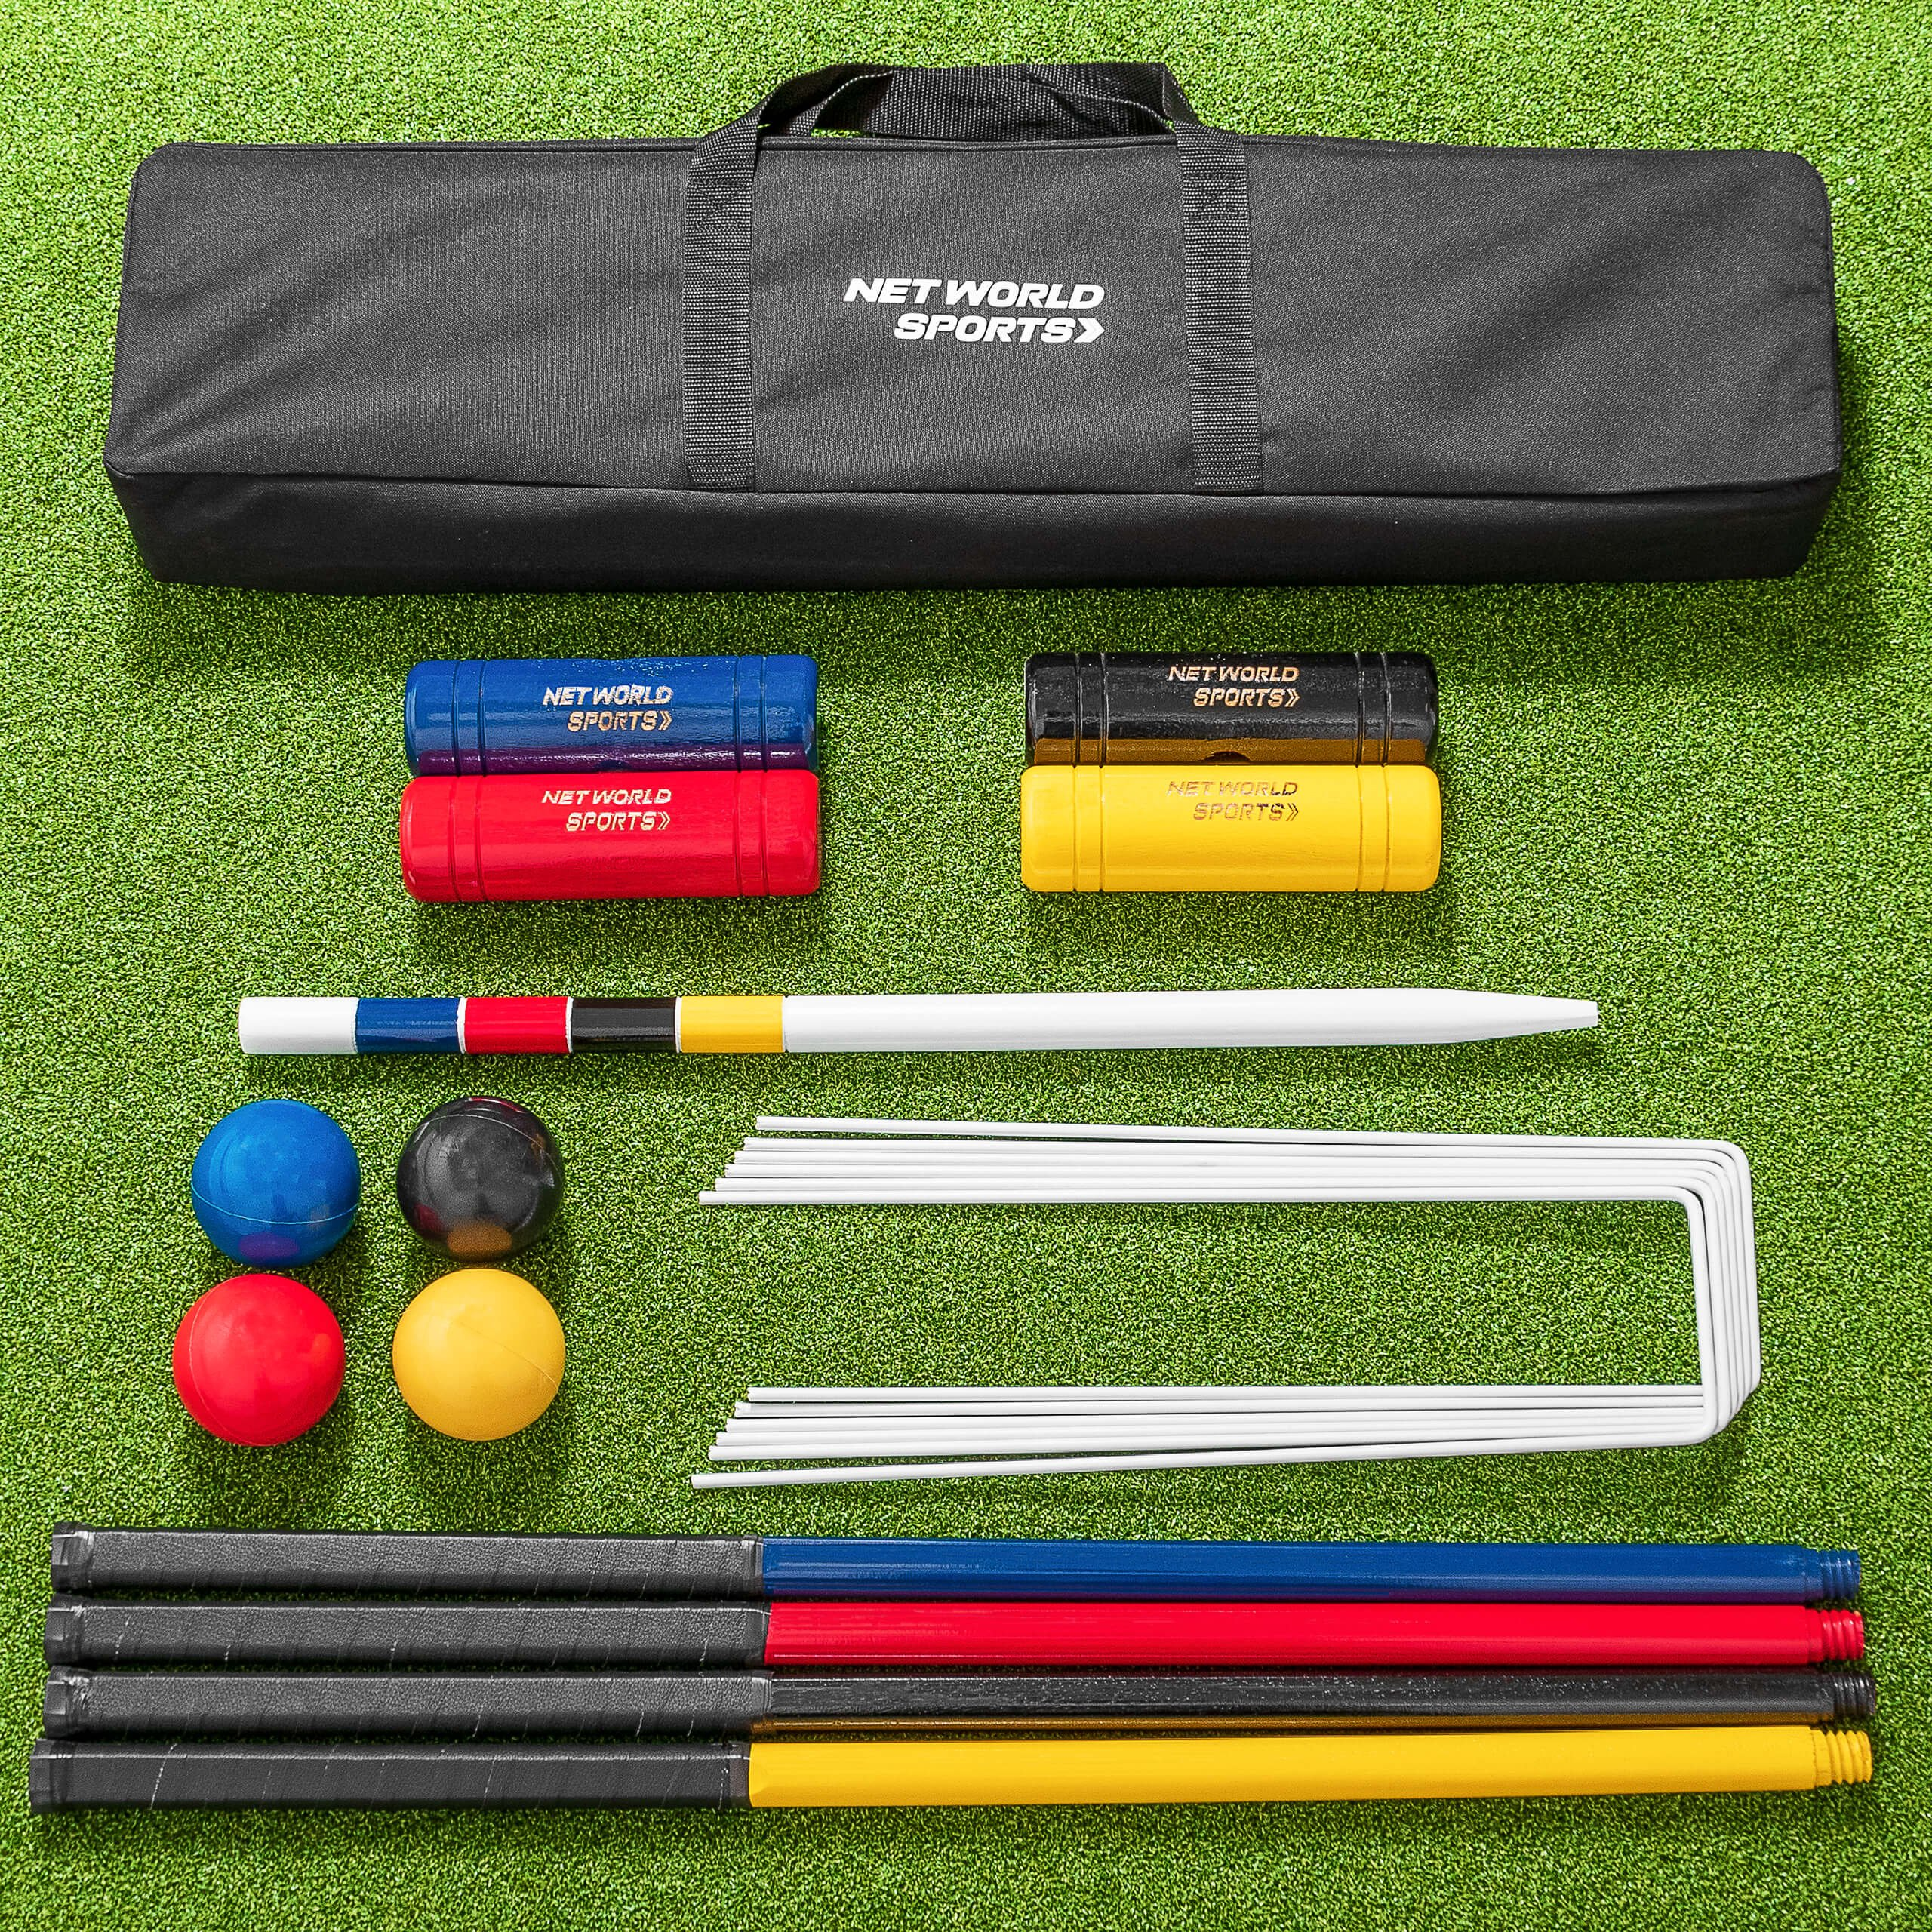 Net World Sports COMPLETE 4 PERSON CROQUET SET – Full Size Wooden Lawn Croquet Set Traditional Mallets, Steel Hoops, Clips, Balls, Winning Post, Flags & Carry Holdall by Net World Sports